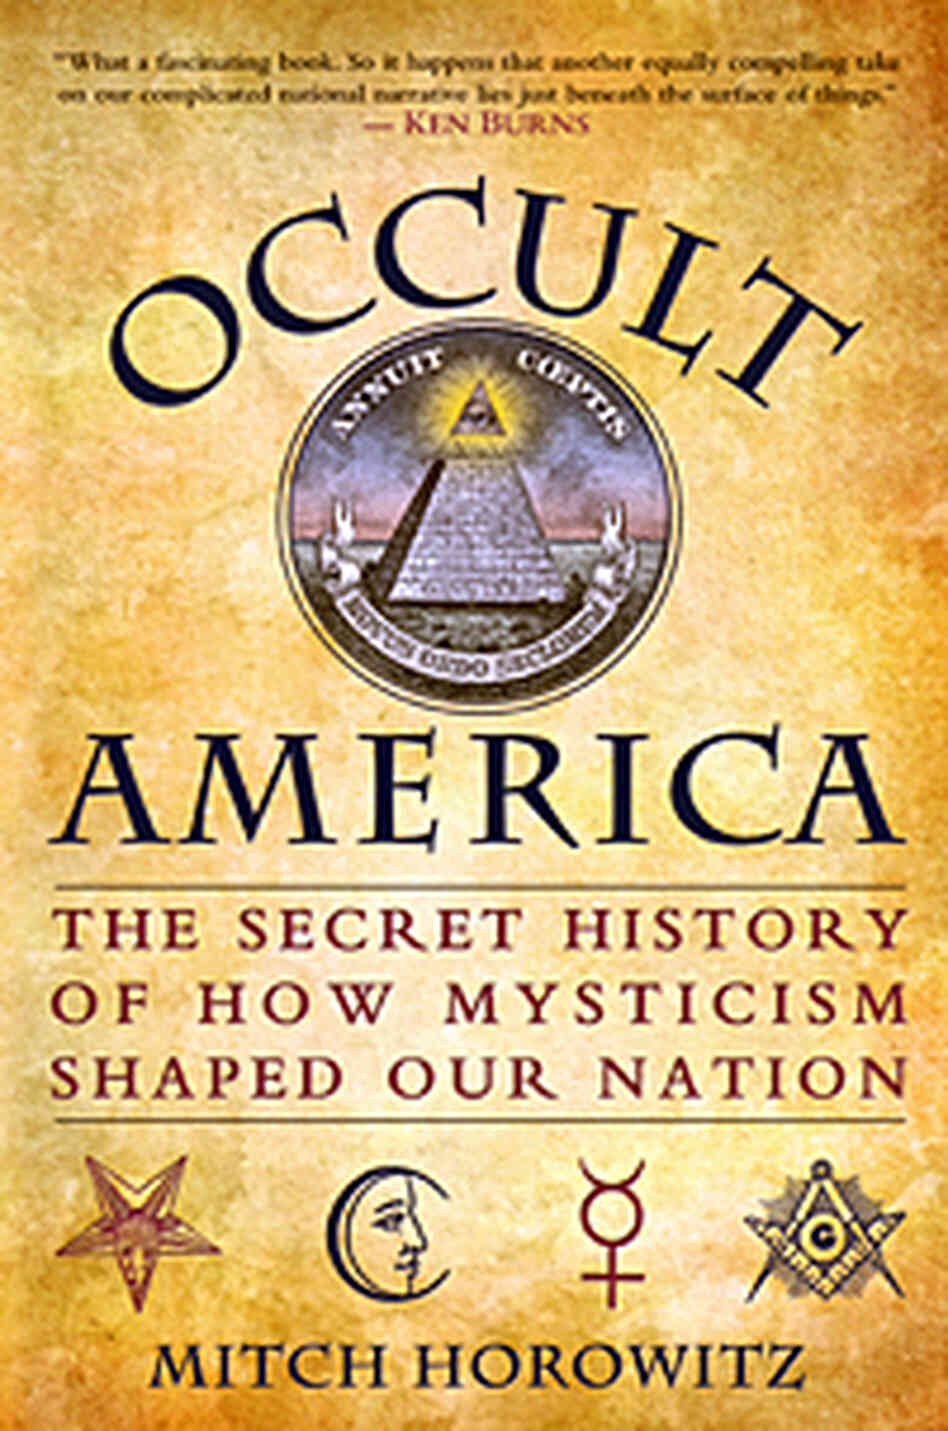 Book Cover: Occult America